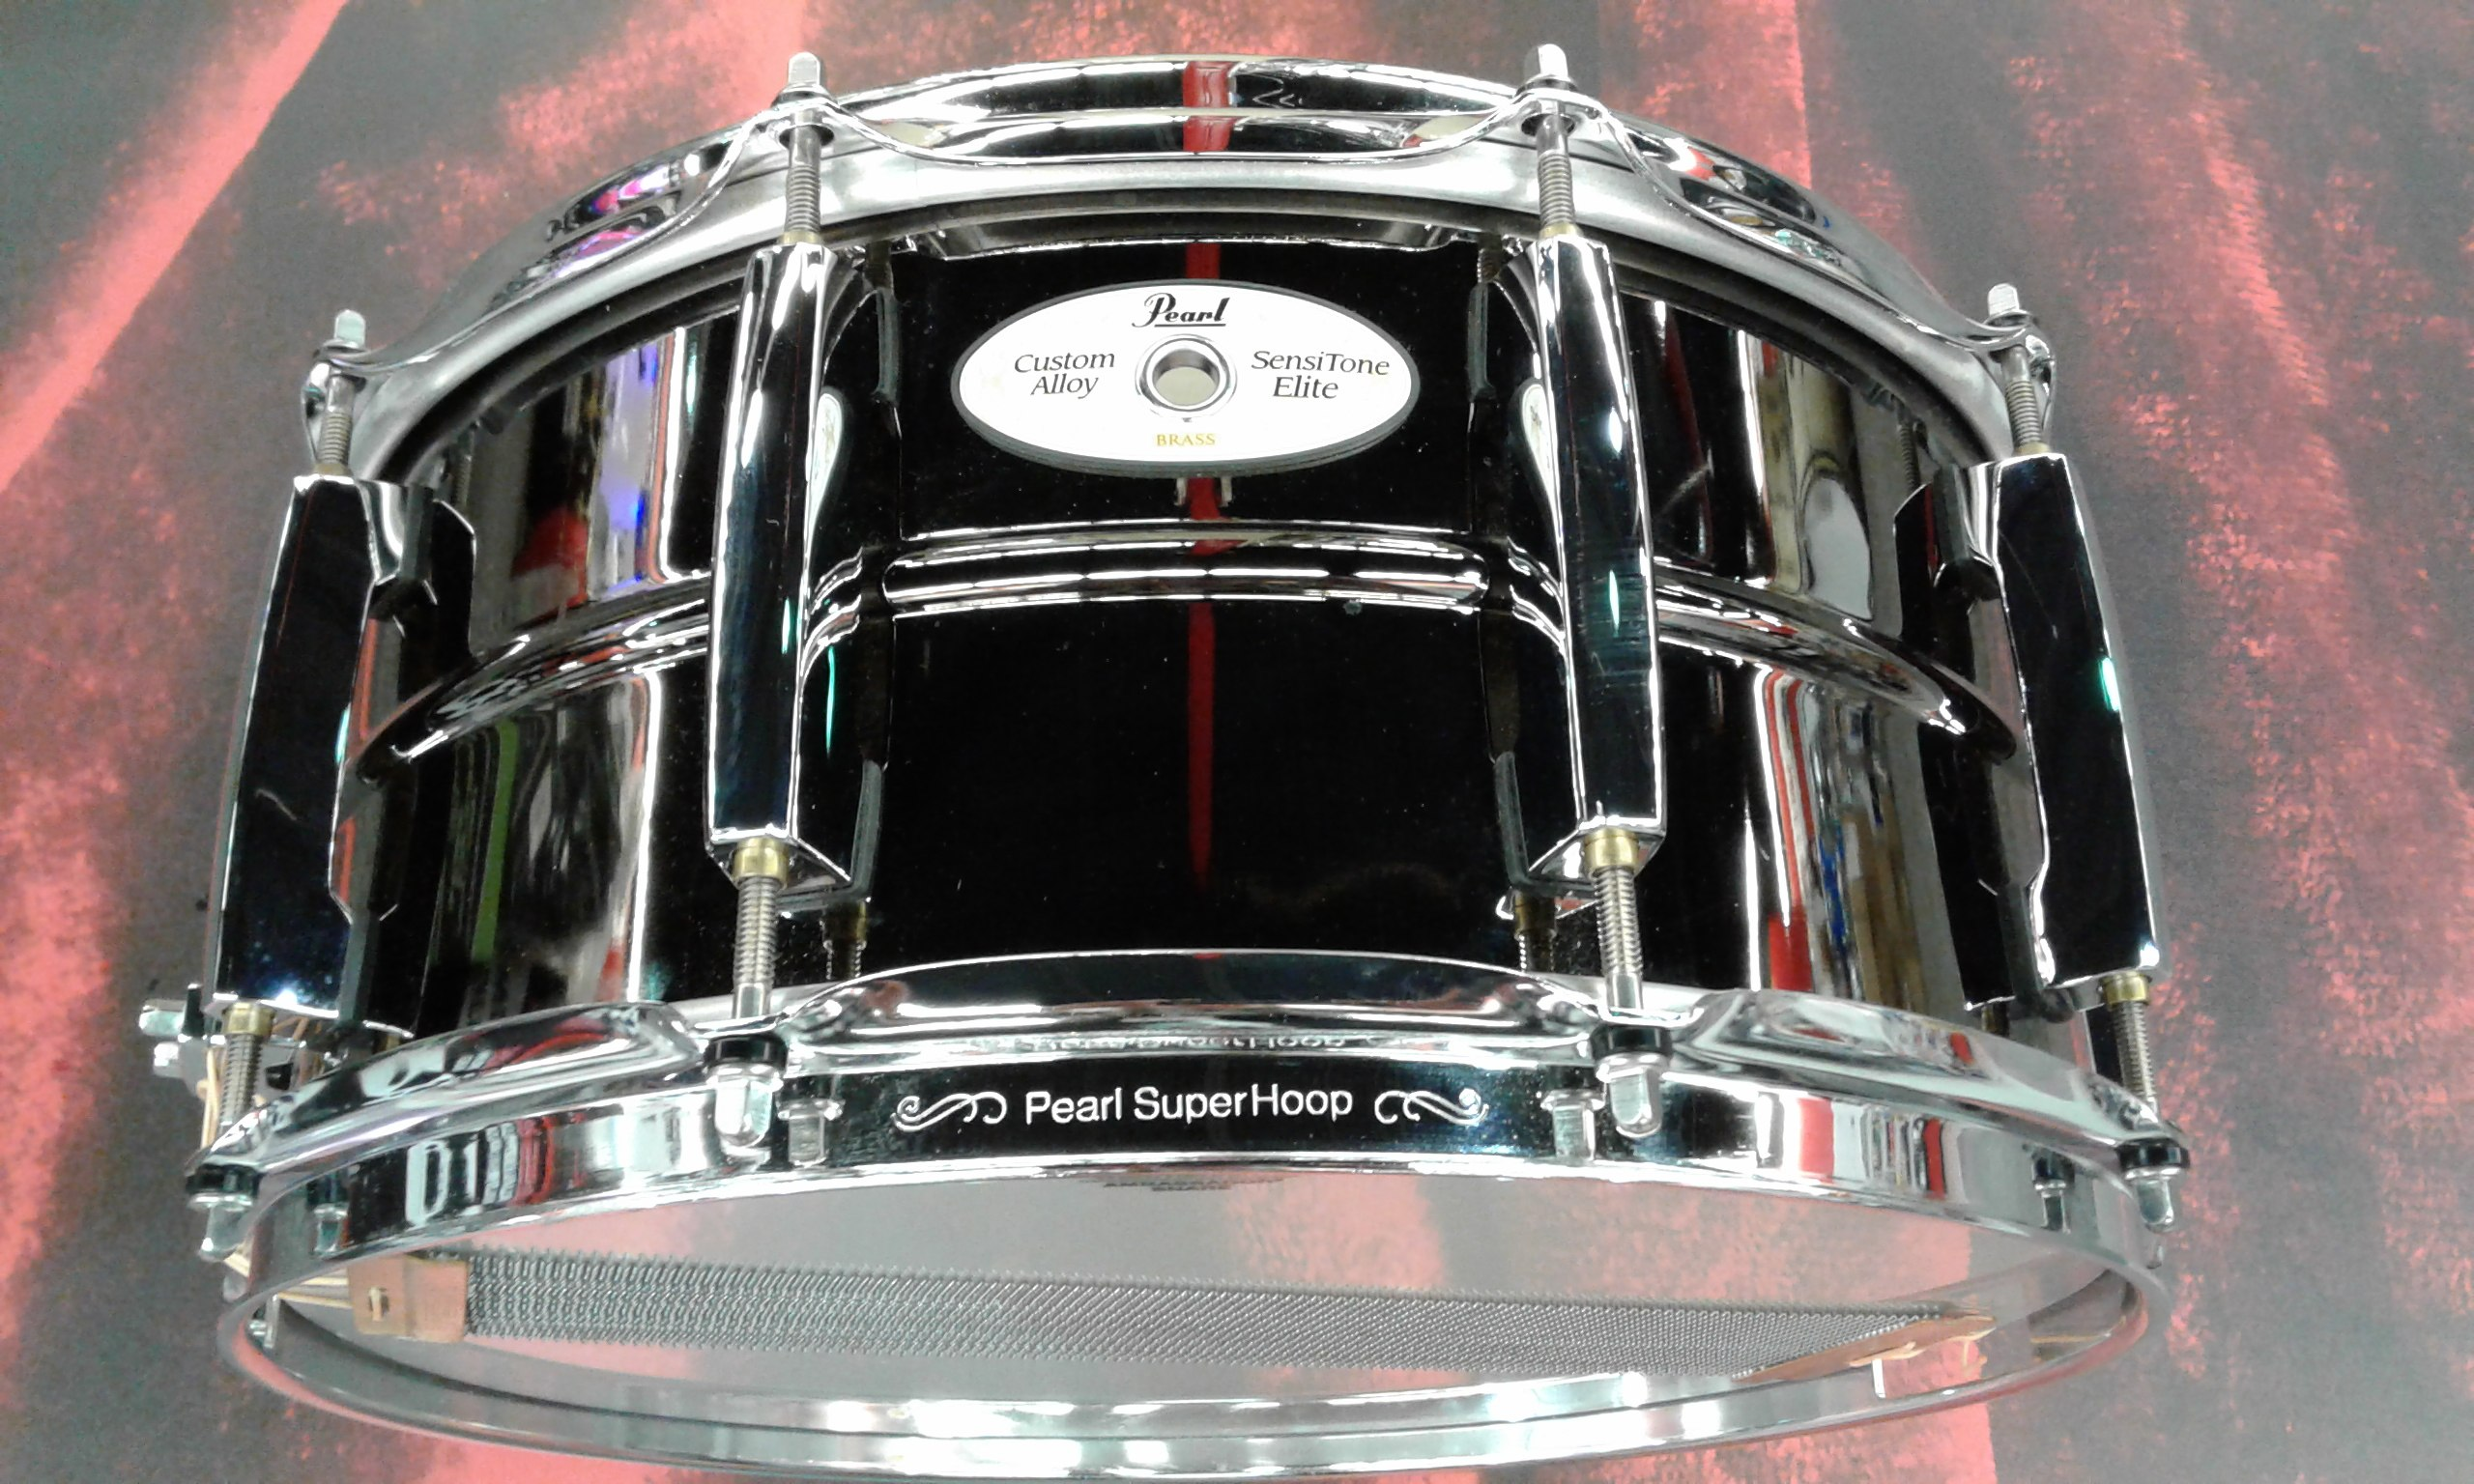 Used Snare Drums Archives - Page 7 of 11 - Sam Ash Used Gear